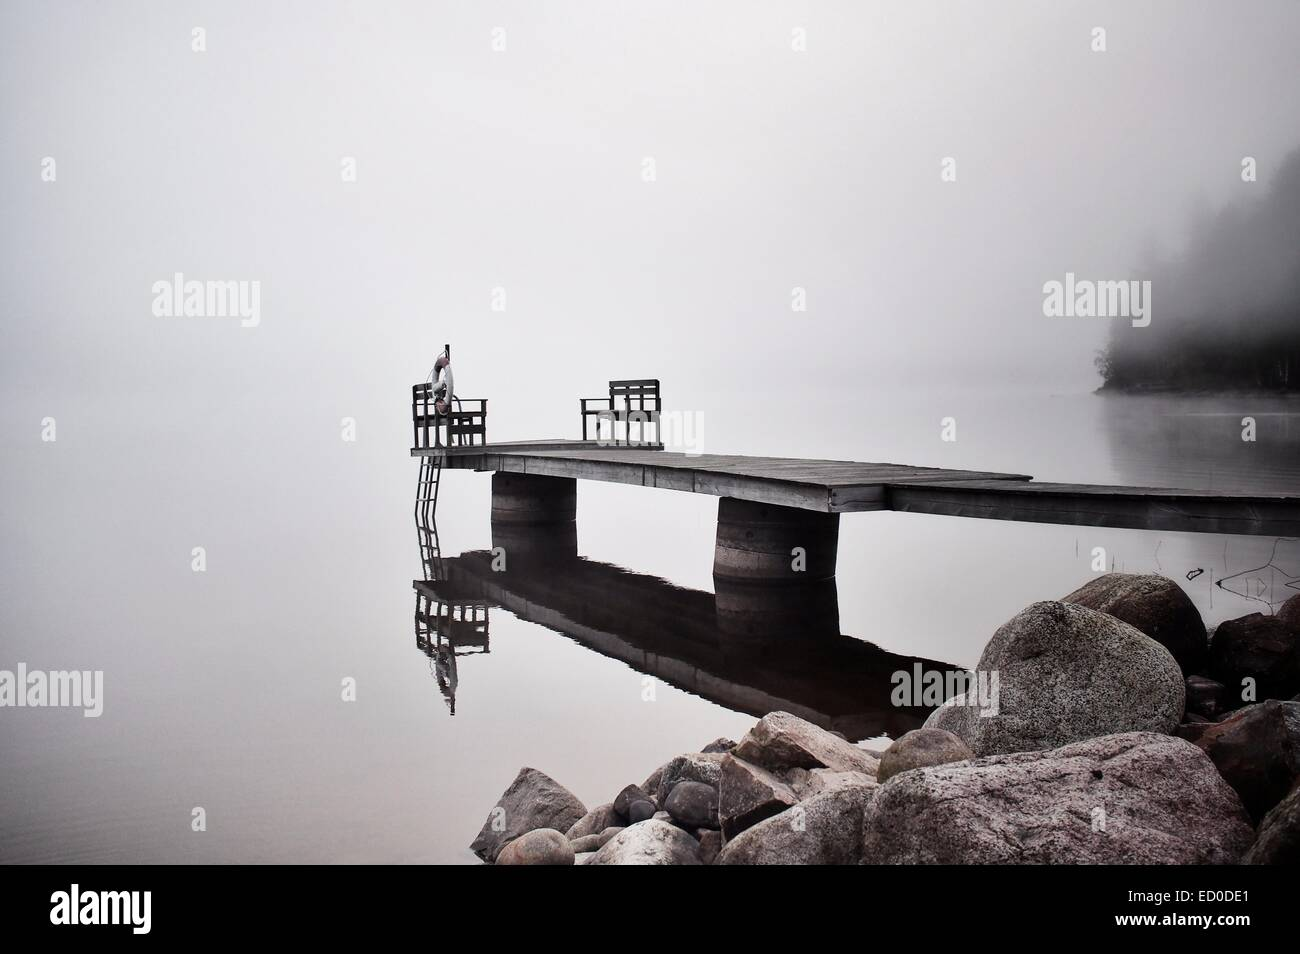 Sweden, Dalarna, Pier reflecting in surface of water in misty, foggy morning - Stock Image